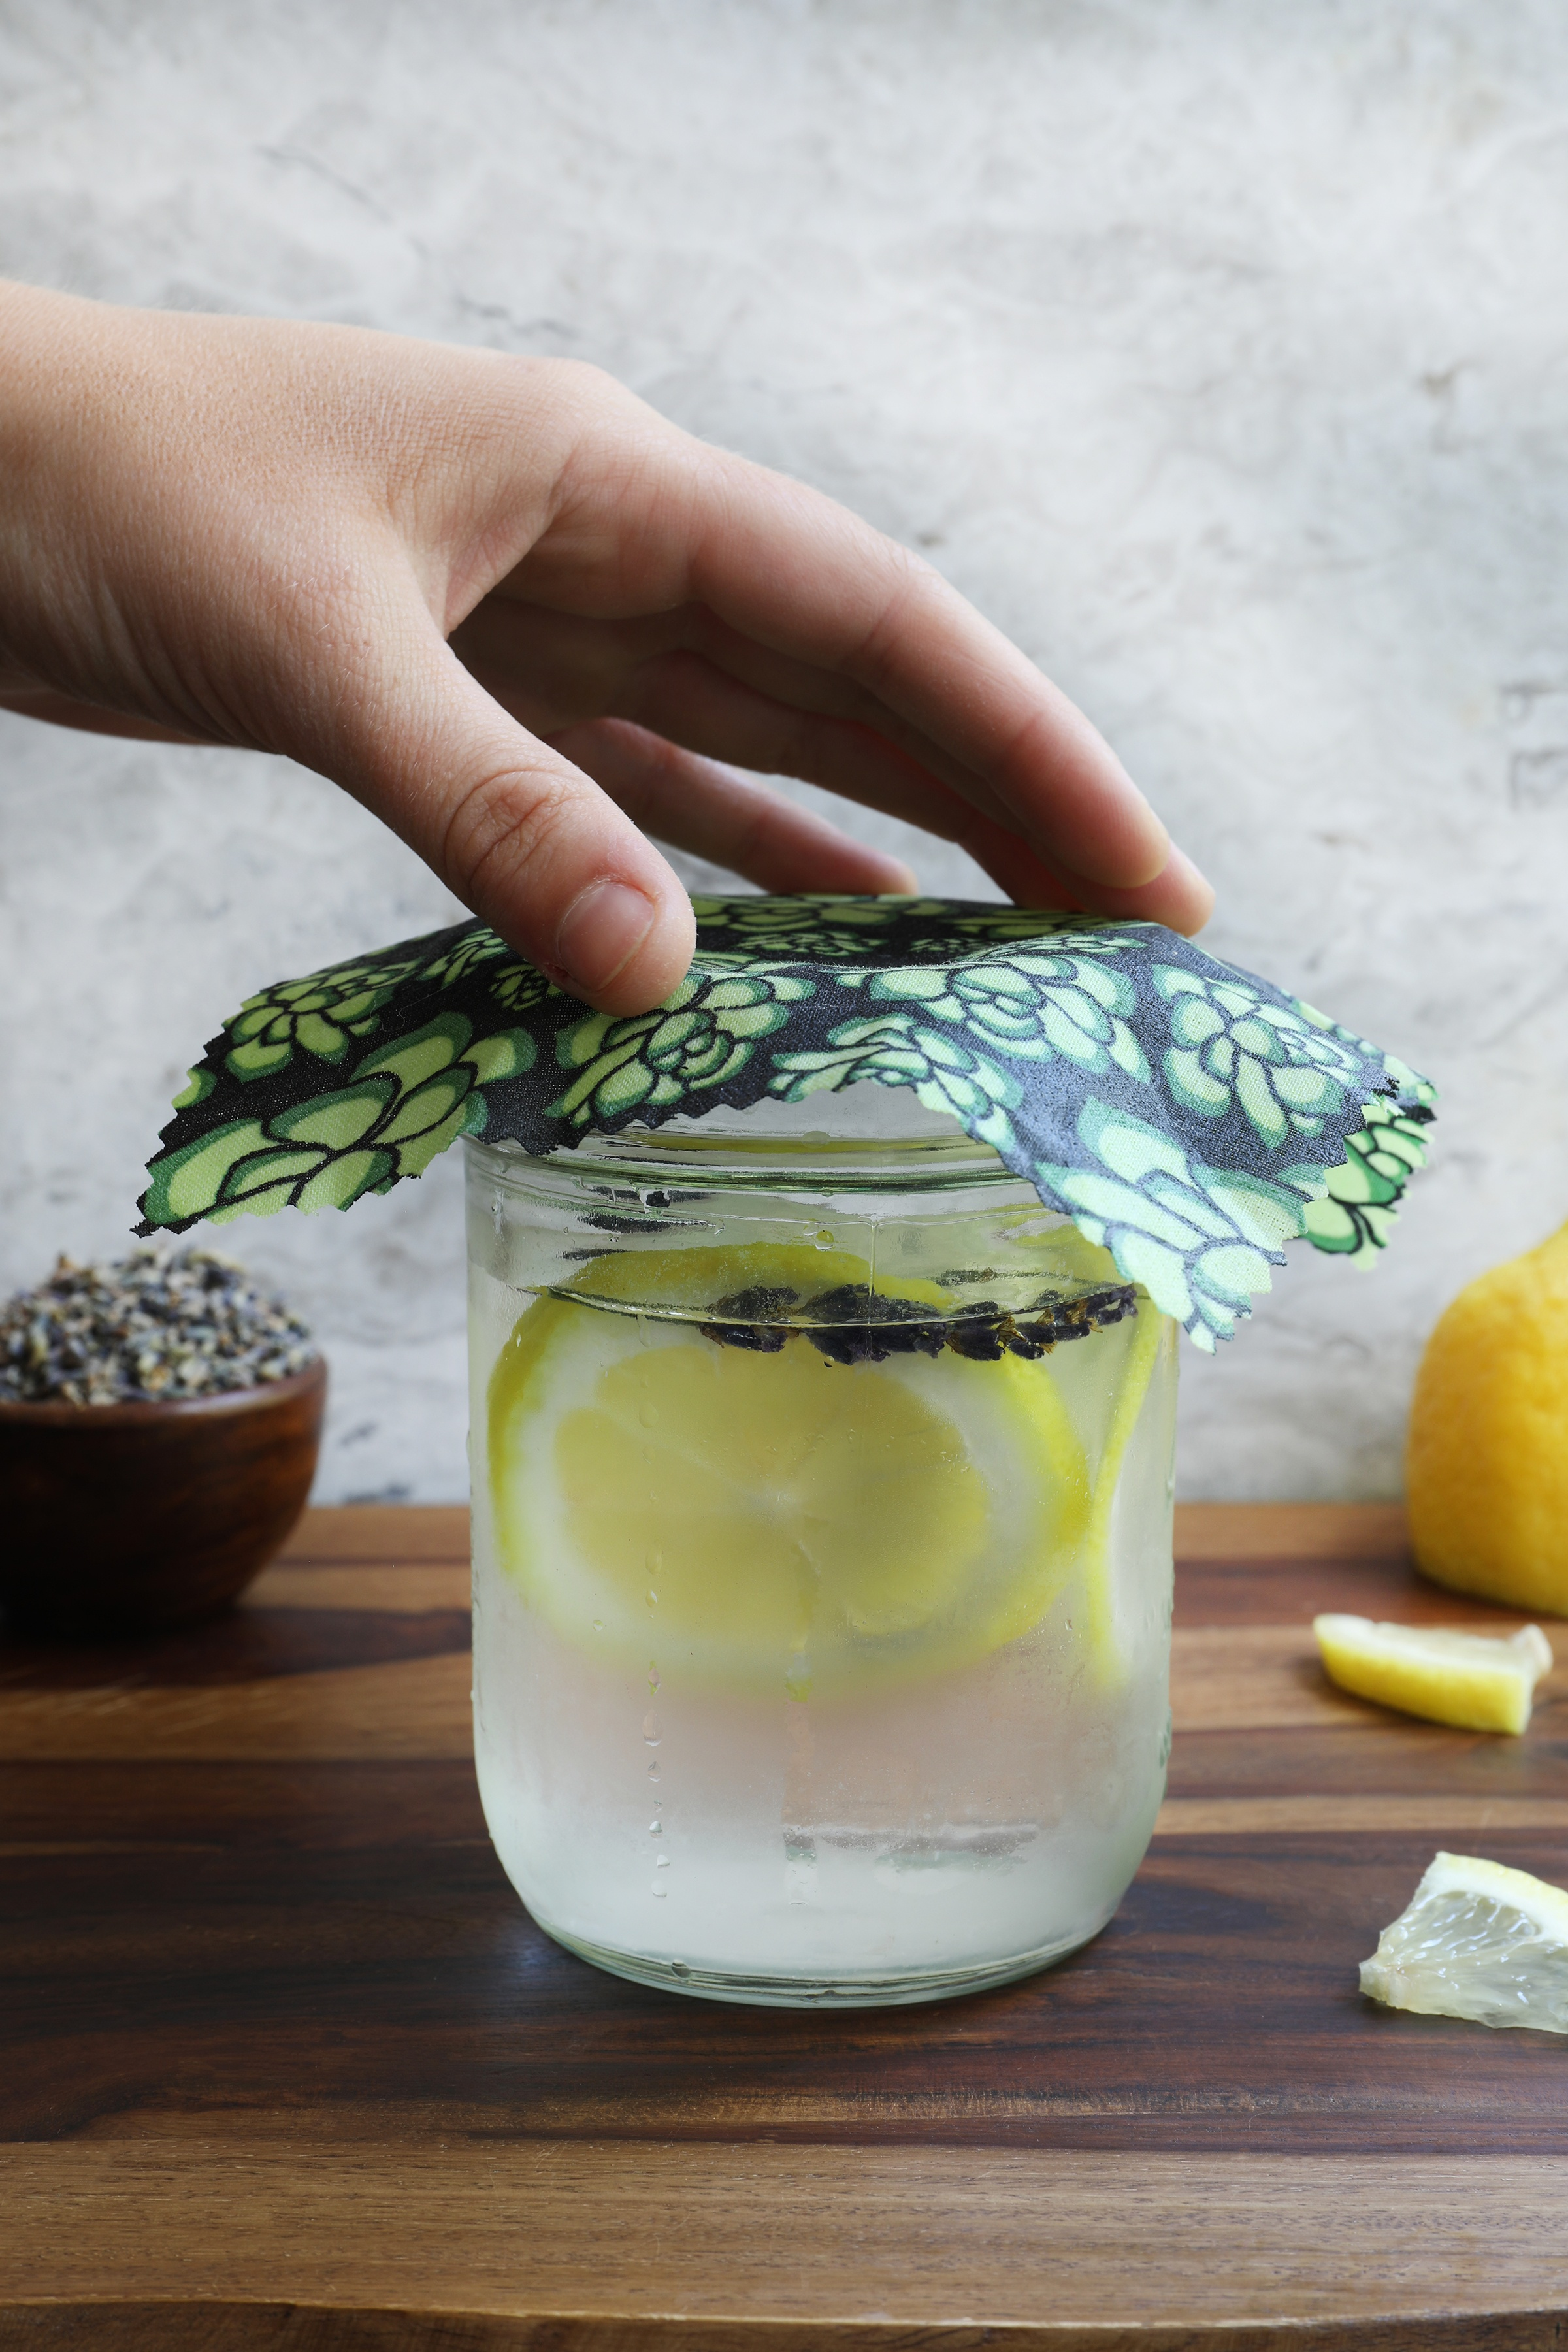 Hand securing a homemade beeswax wrap to a mason jar filled with lemon herb water.